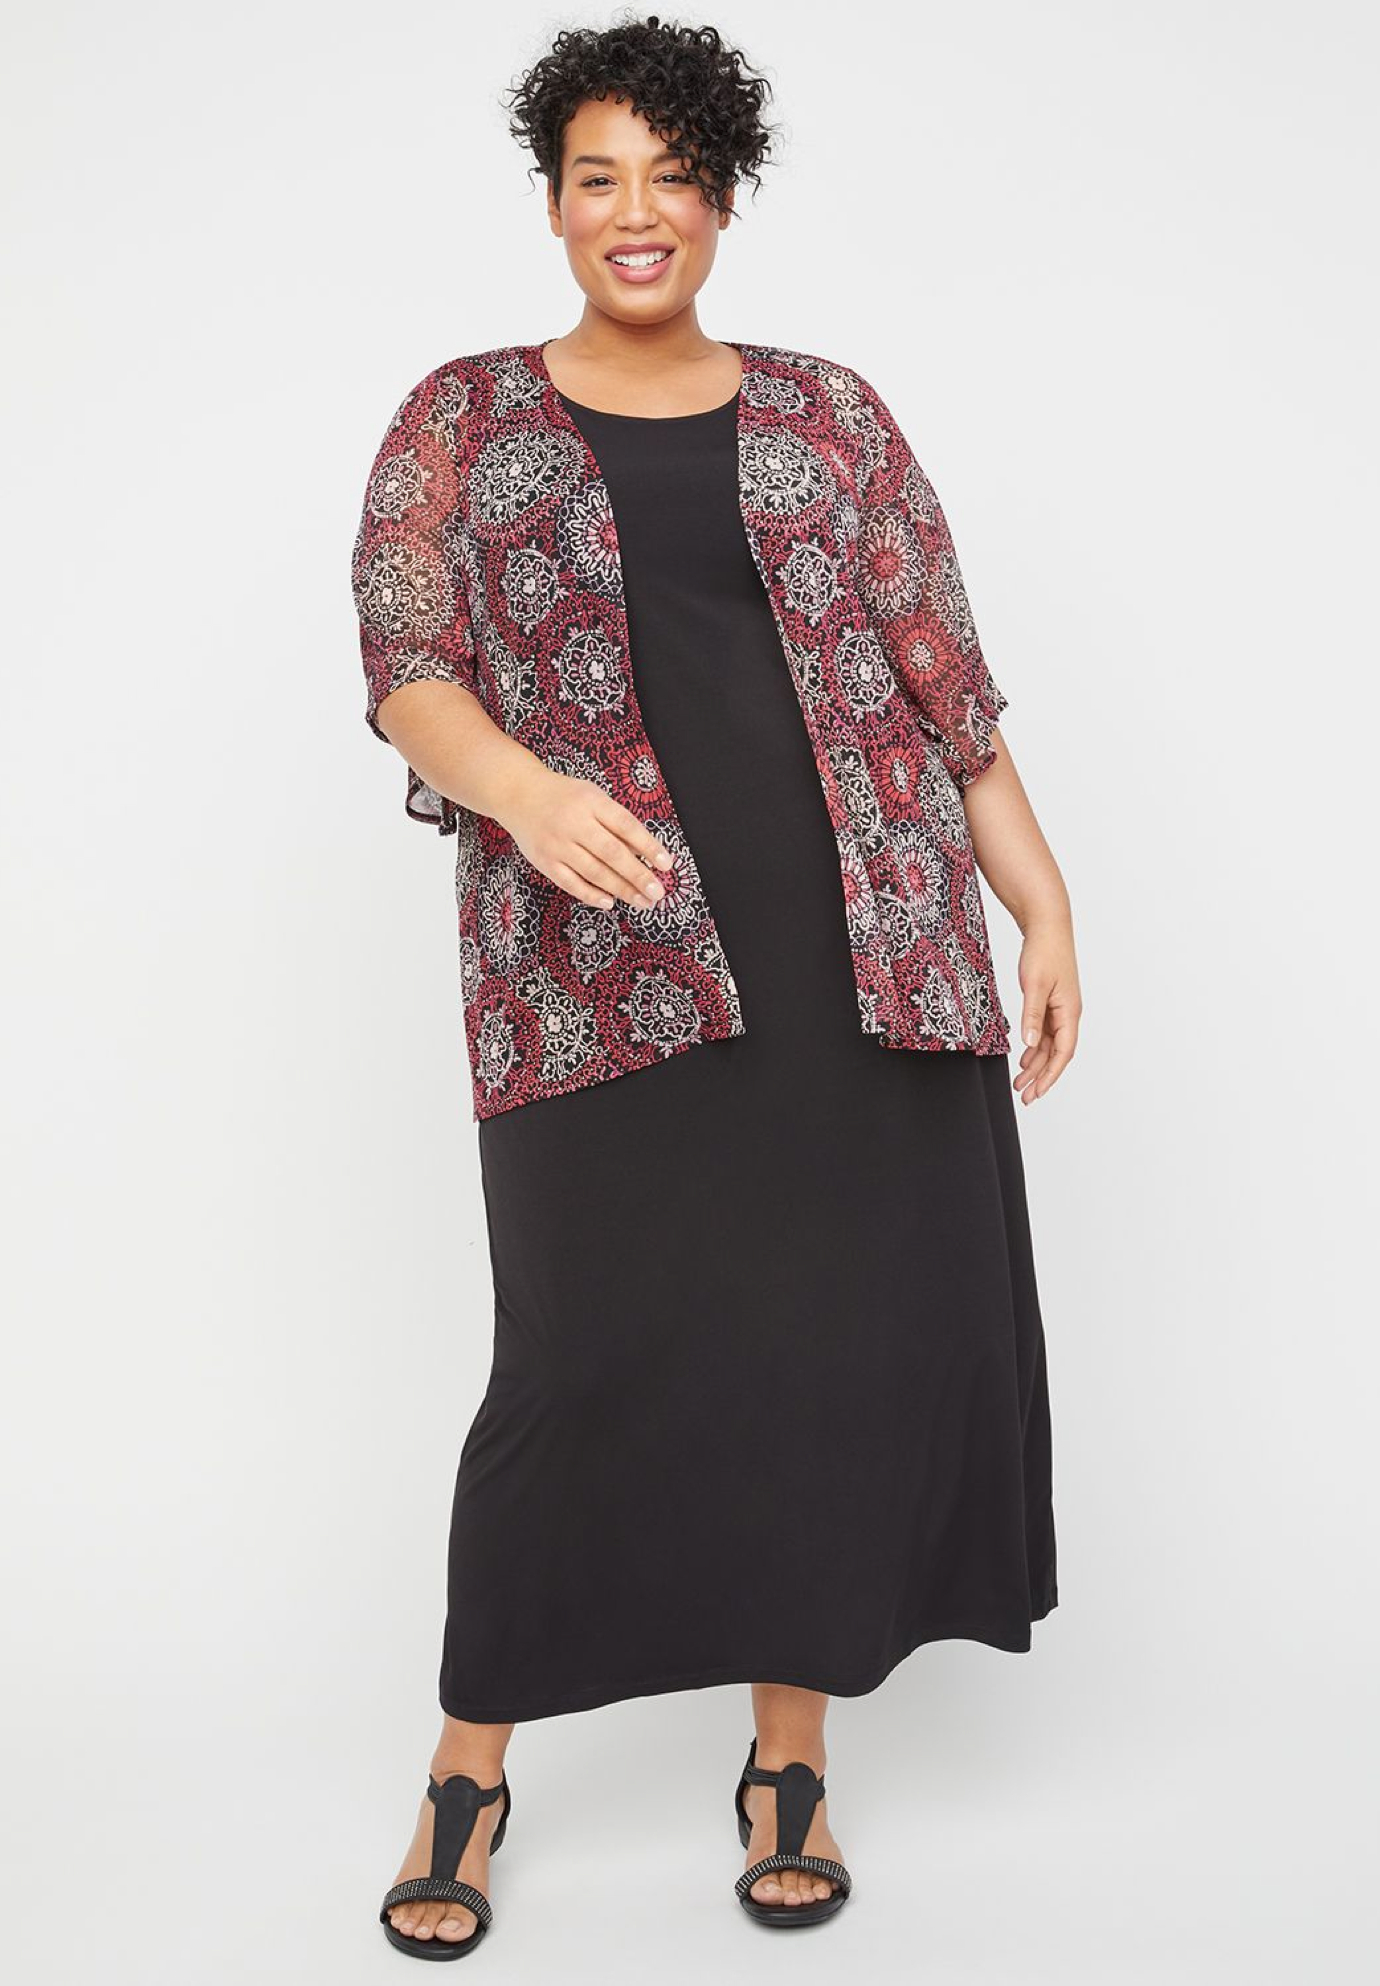 Coneflower Maxi Jacket Dress,